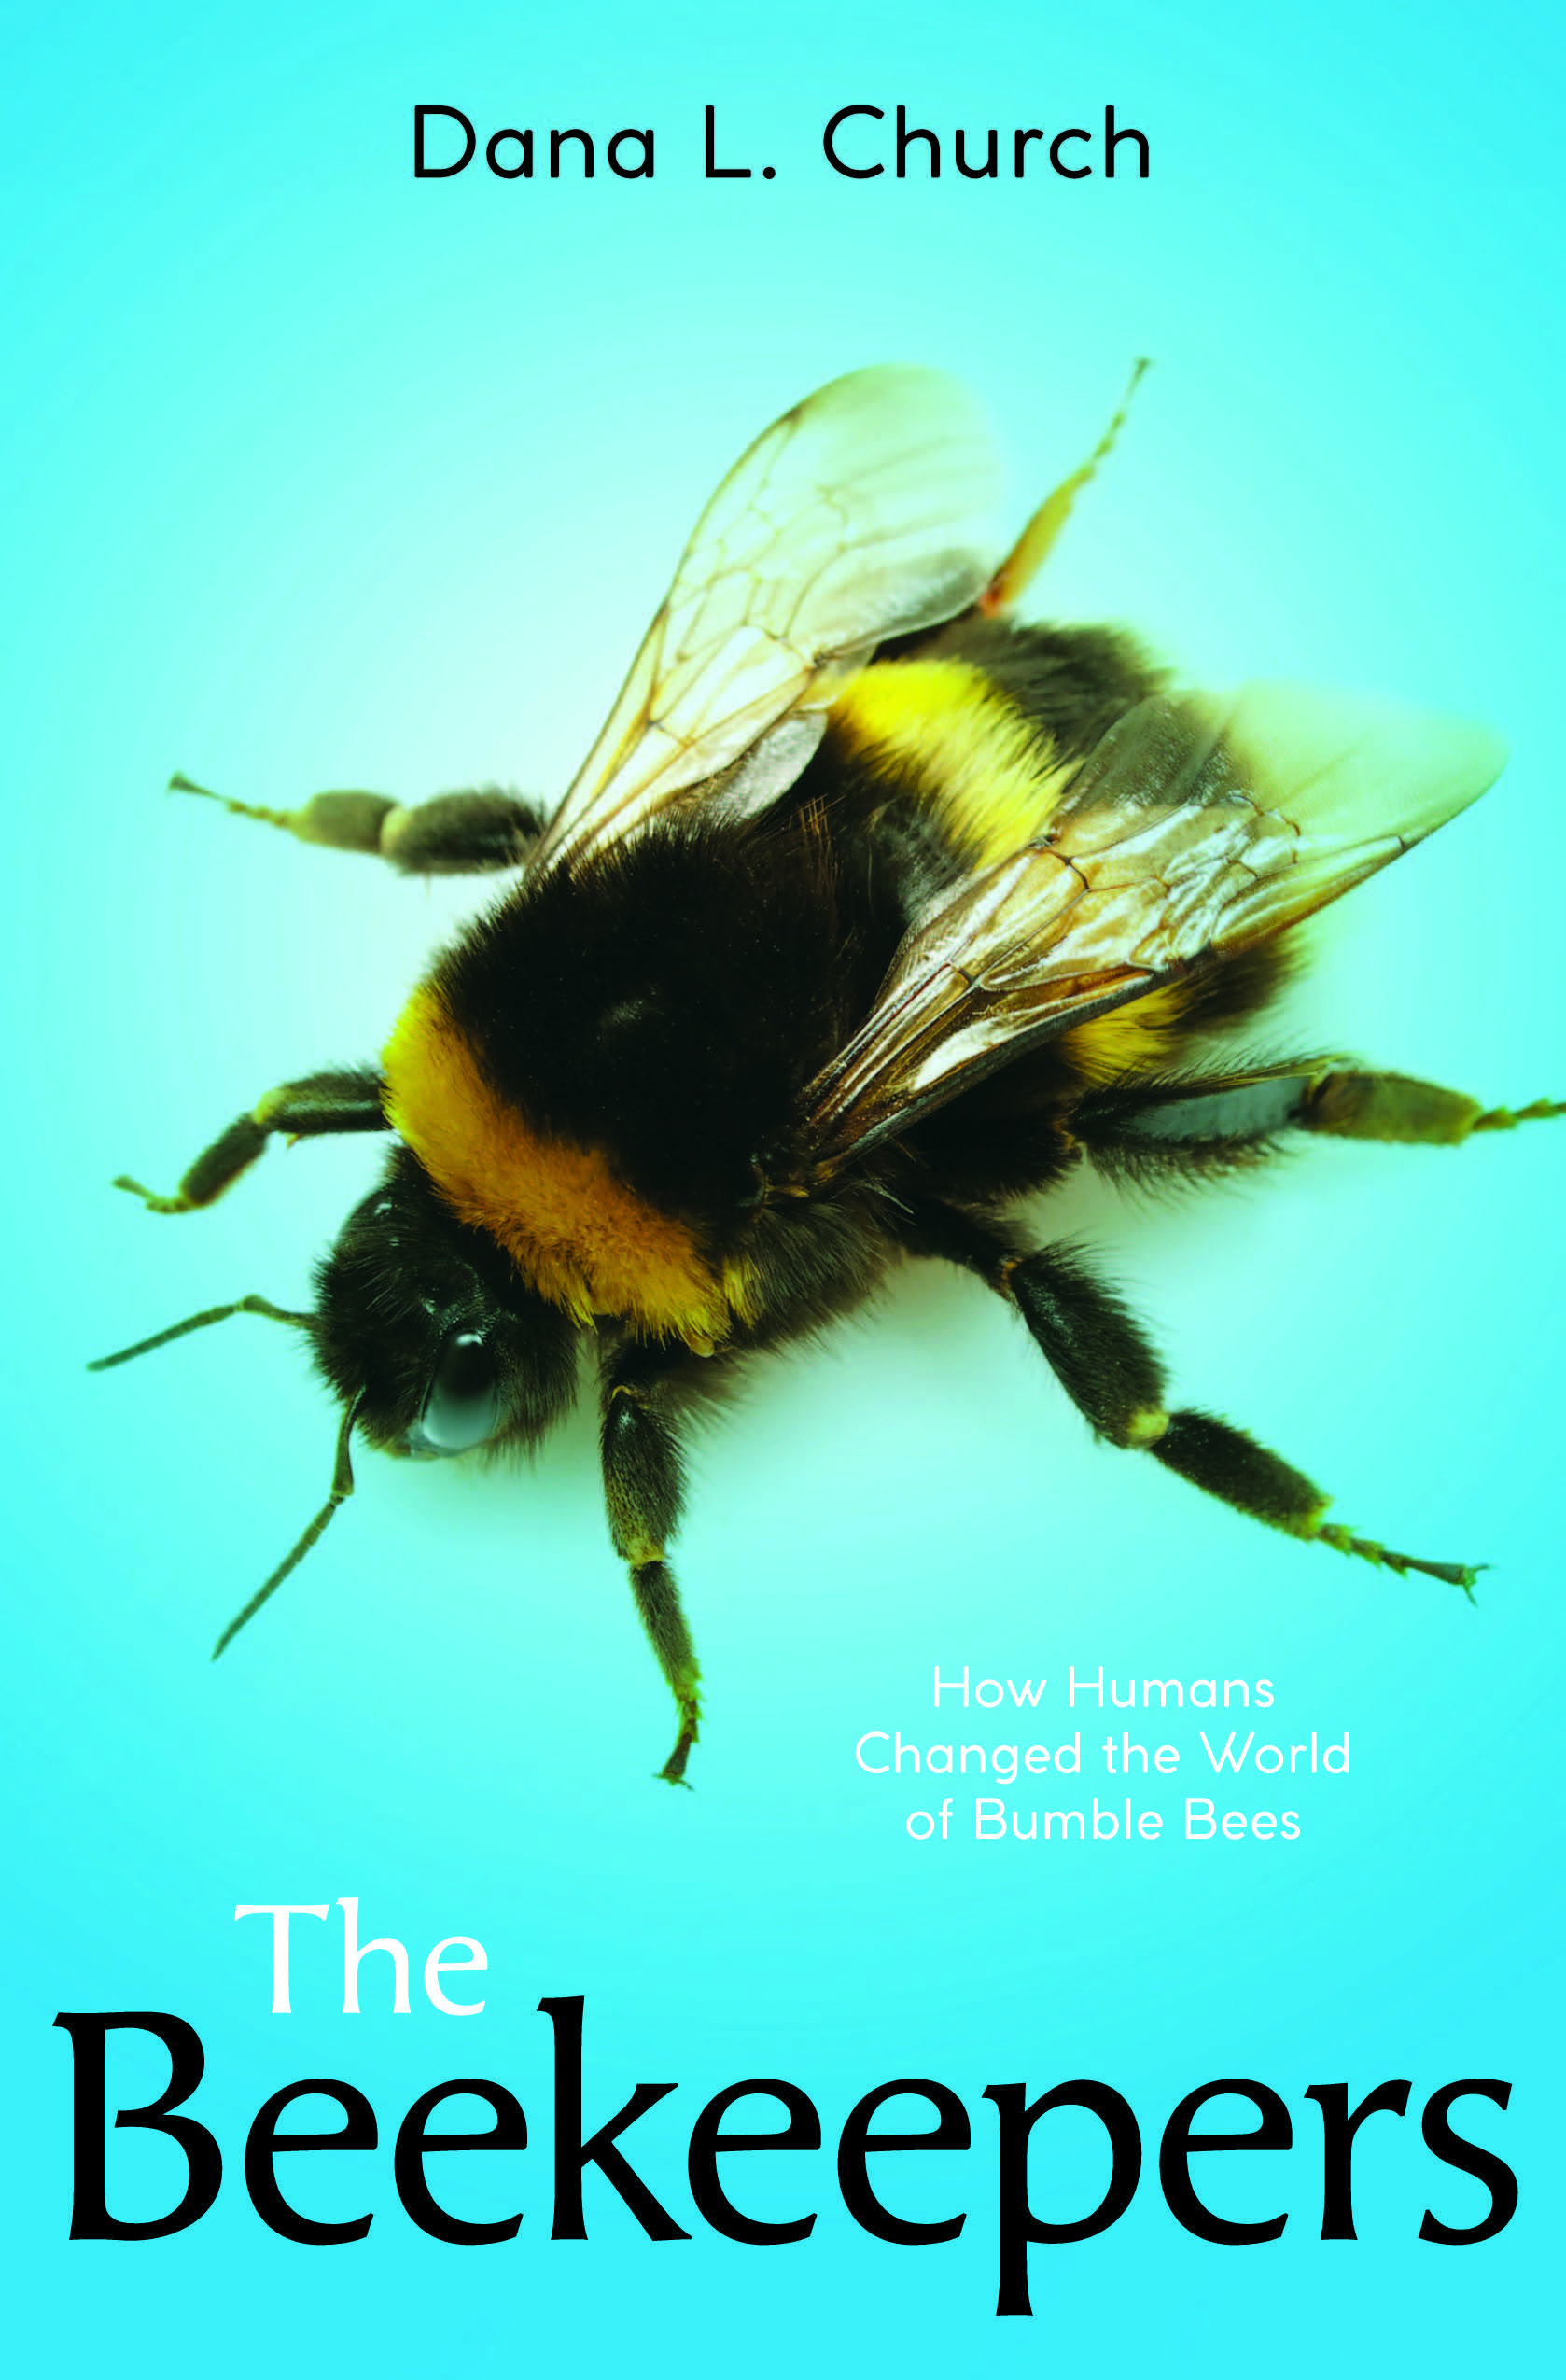 The Beekeepers: How Humans Changed the World of Bumble Bees: An Interview with the Author